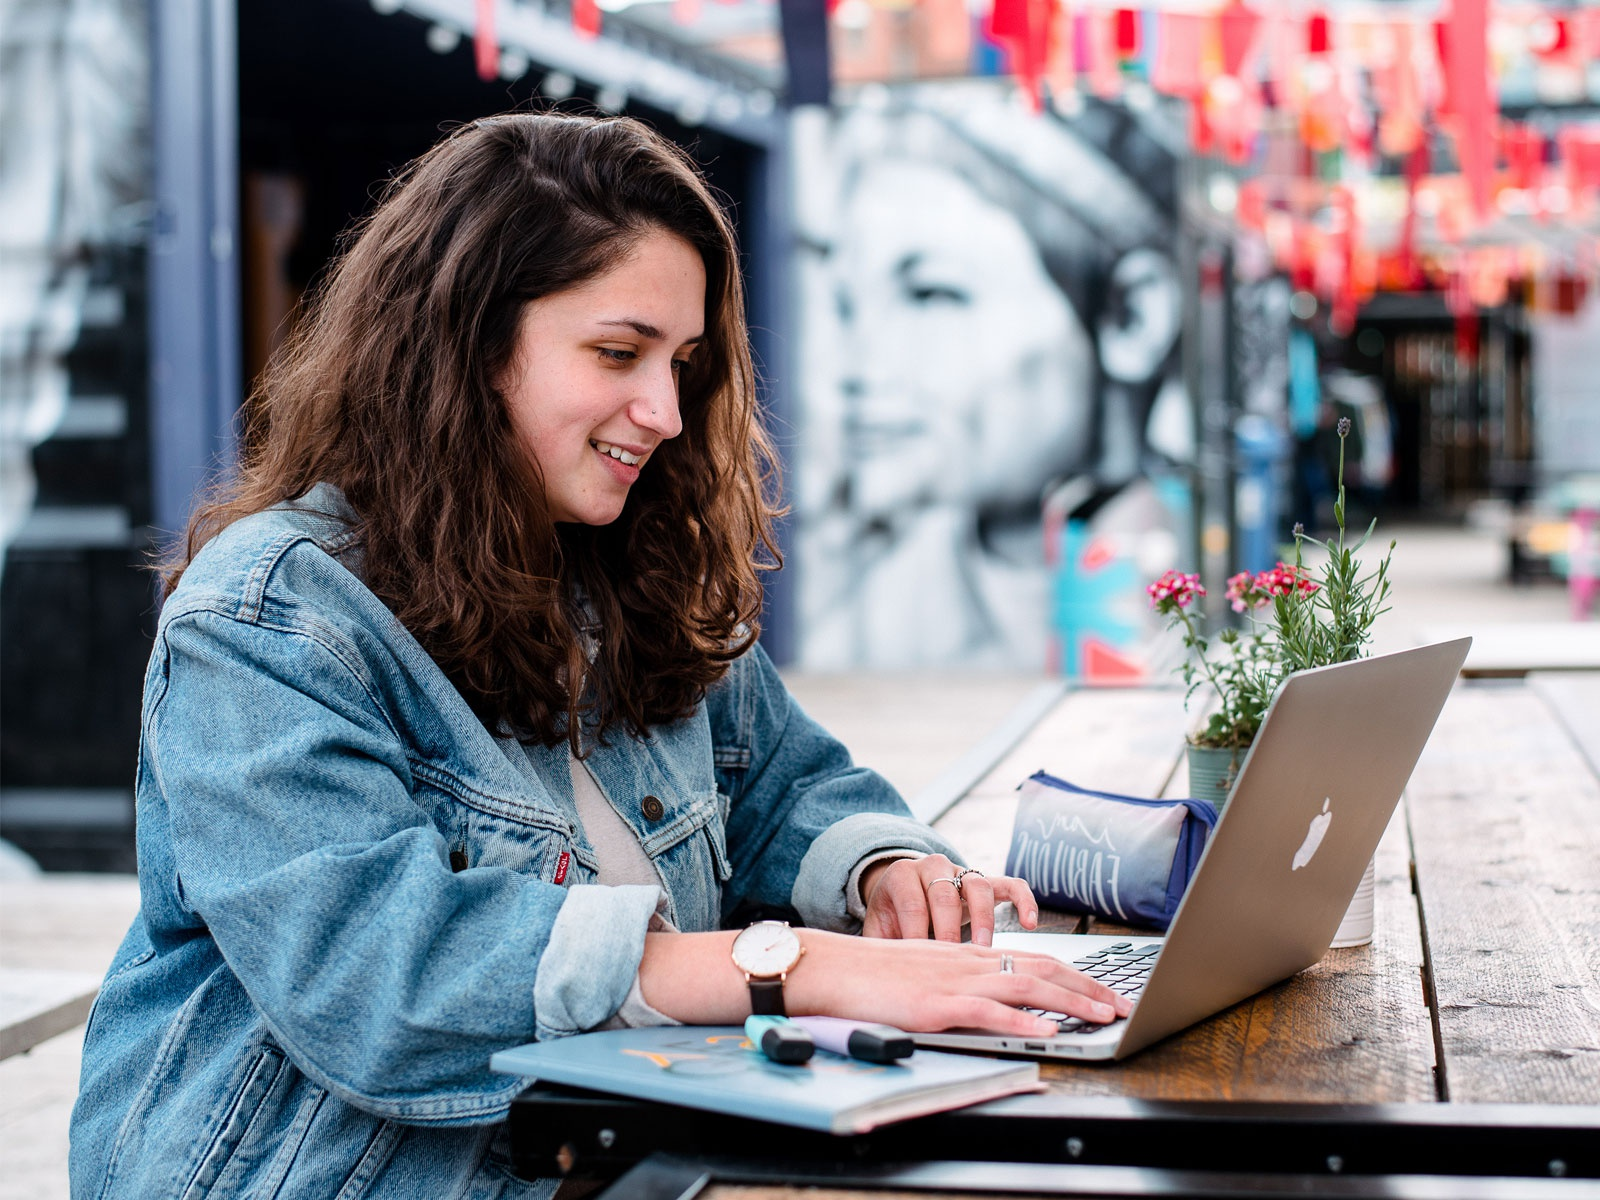 Female student, working on a laptop, in front of a mural at Spark York